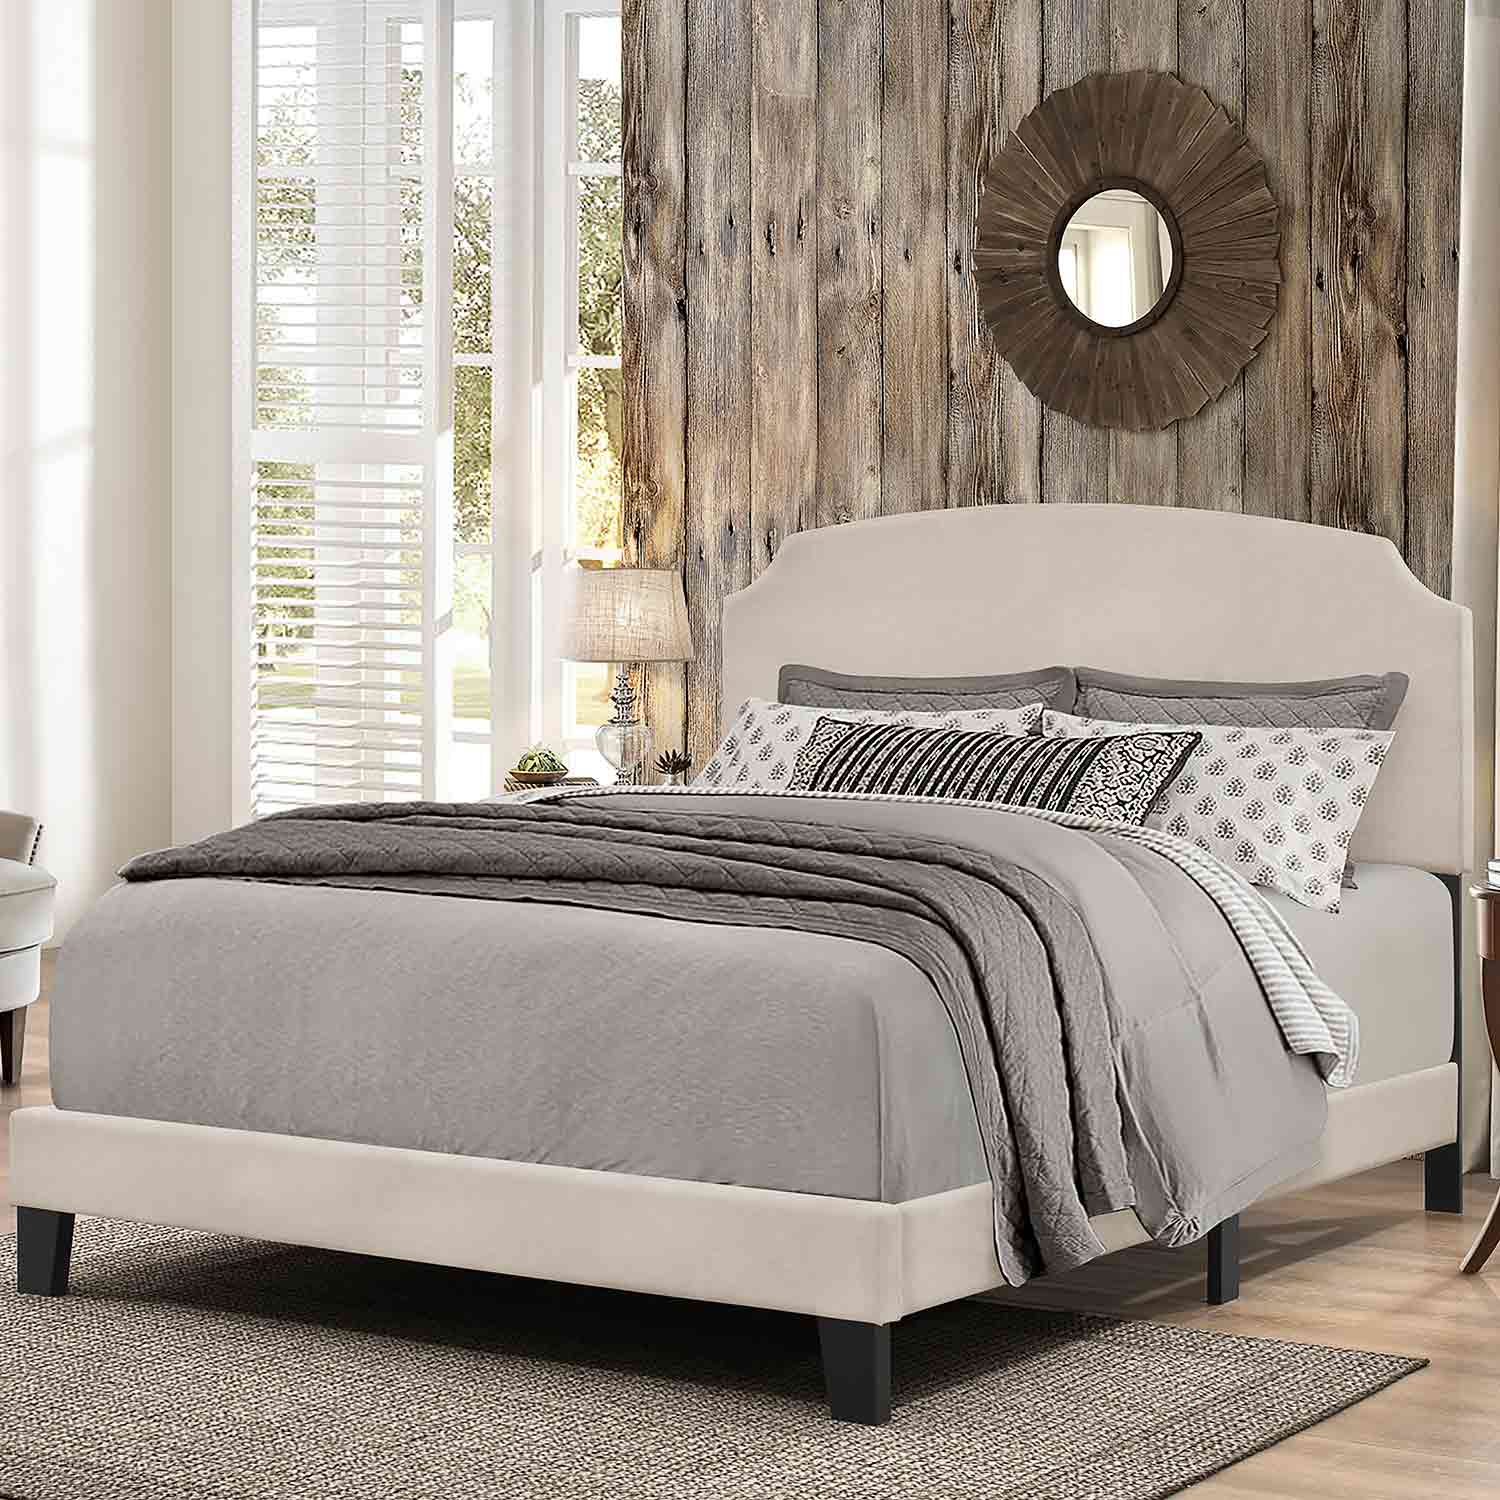 Hillsdale Desi Bed - Fog Fabric